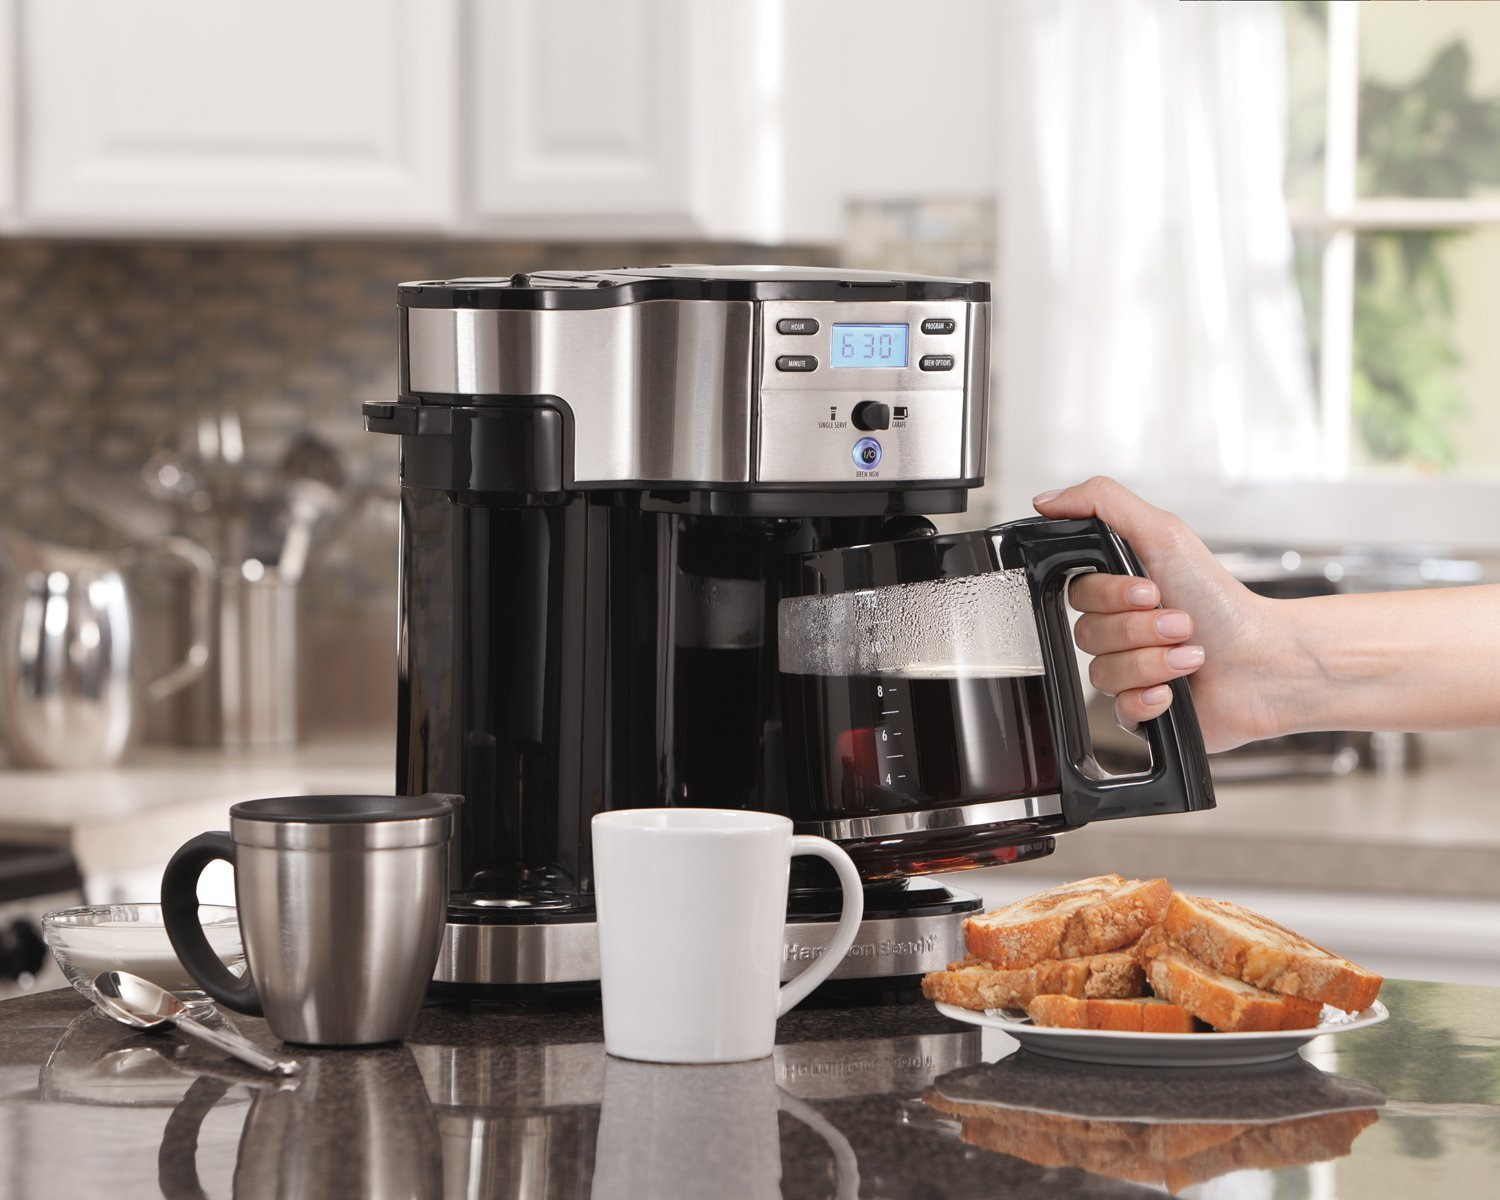 Hamilton Beach (49980A) Single Serve Coffee Maker and Coffee Pot Maker, Programmable, Black/Stainless Steel (Renewed) by Hamilton Beach (Image #3)